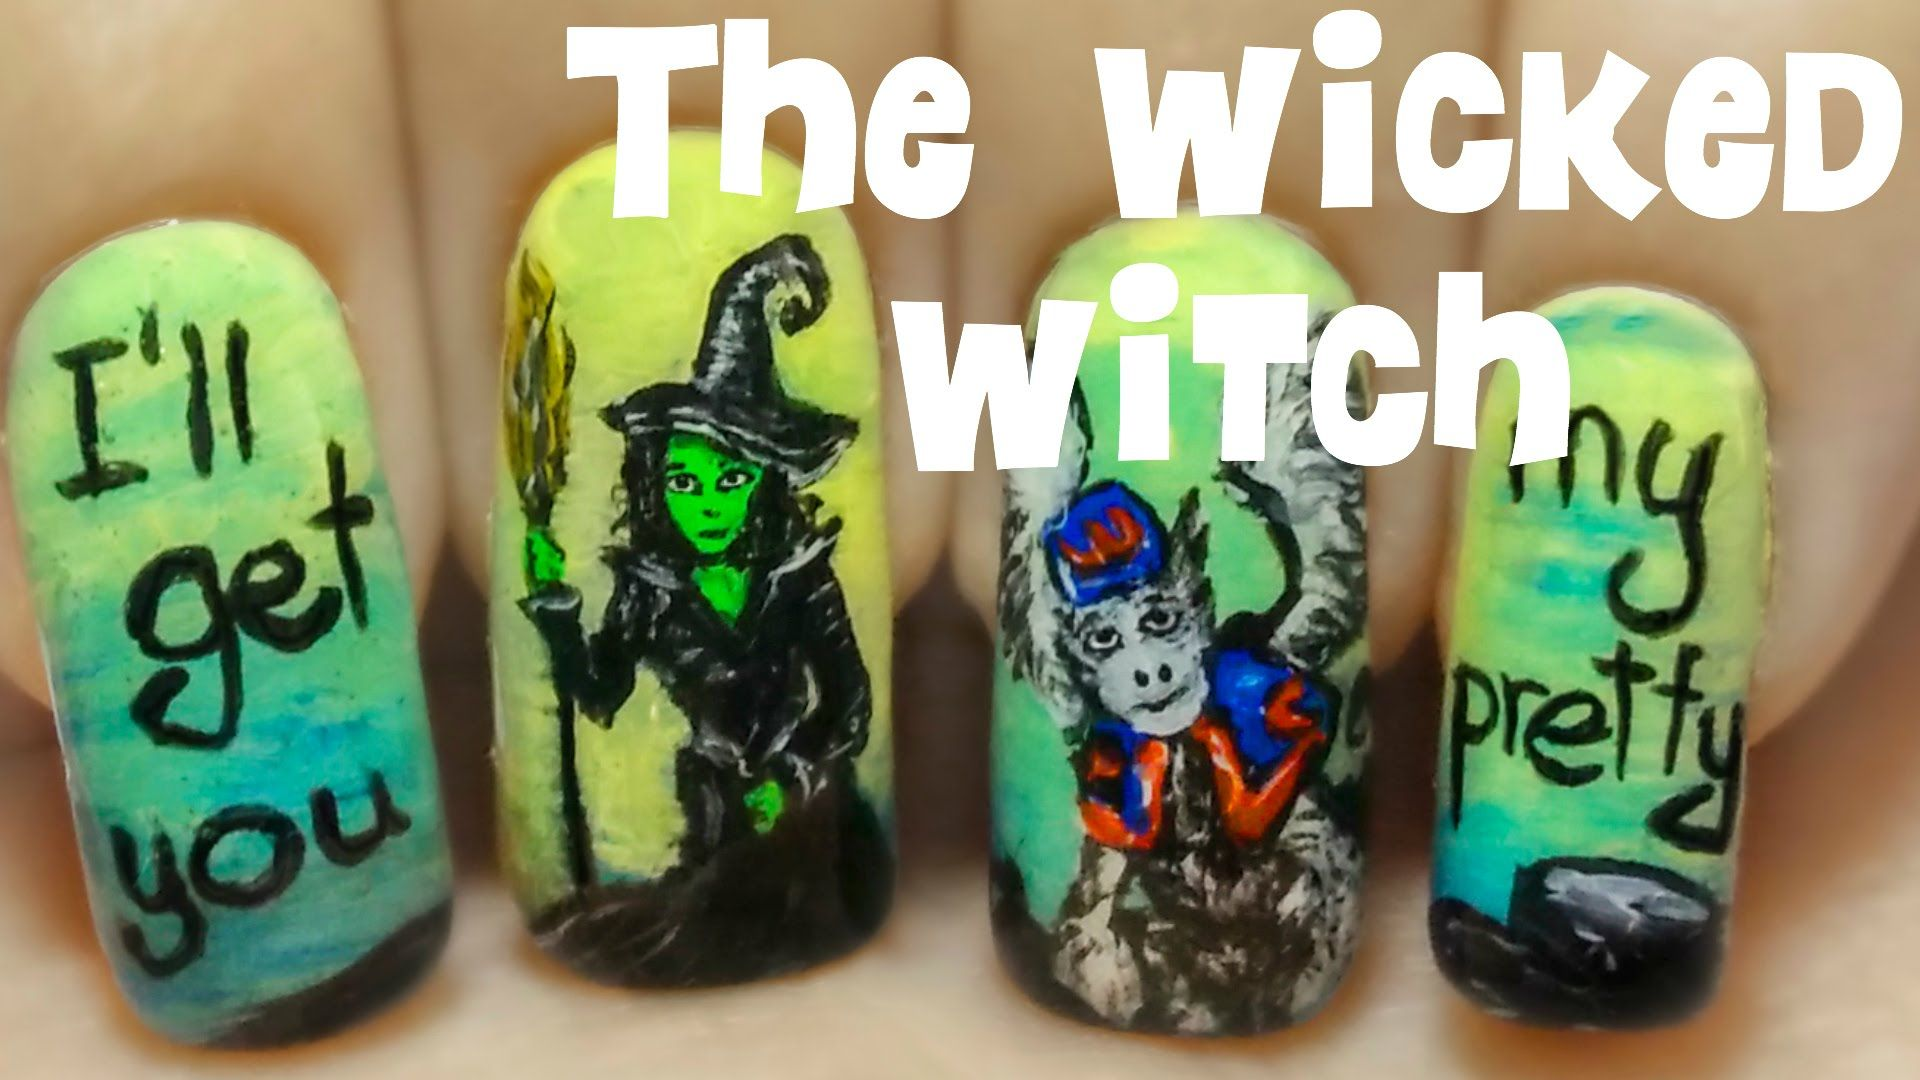 The Wicked Witch of the West (The Wizard of Oz - Part 4) ⎮ Freehand ...